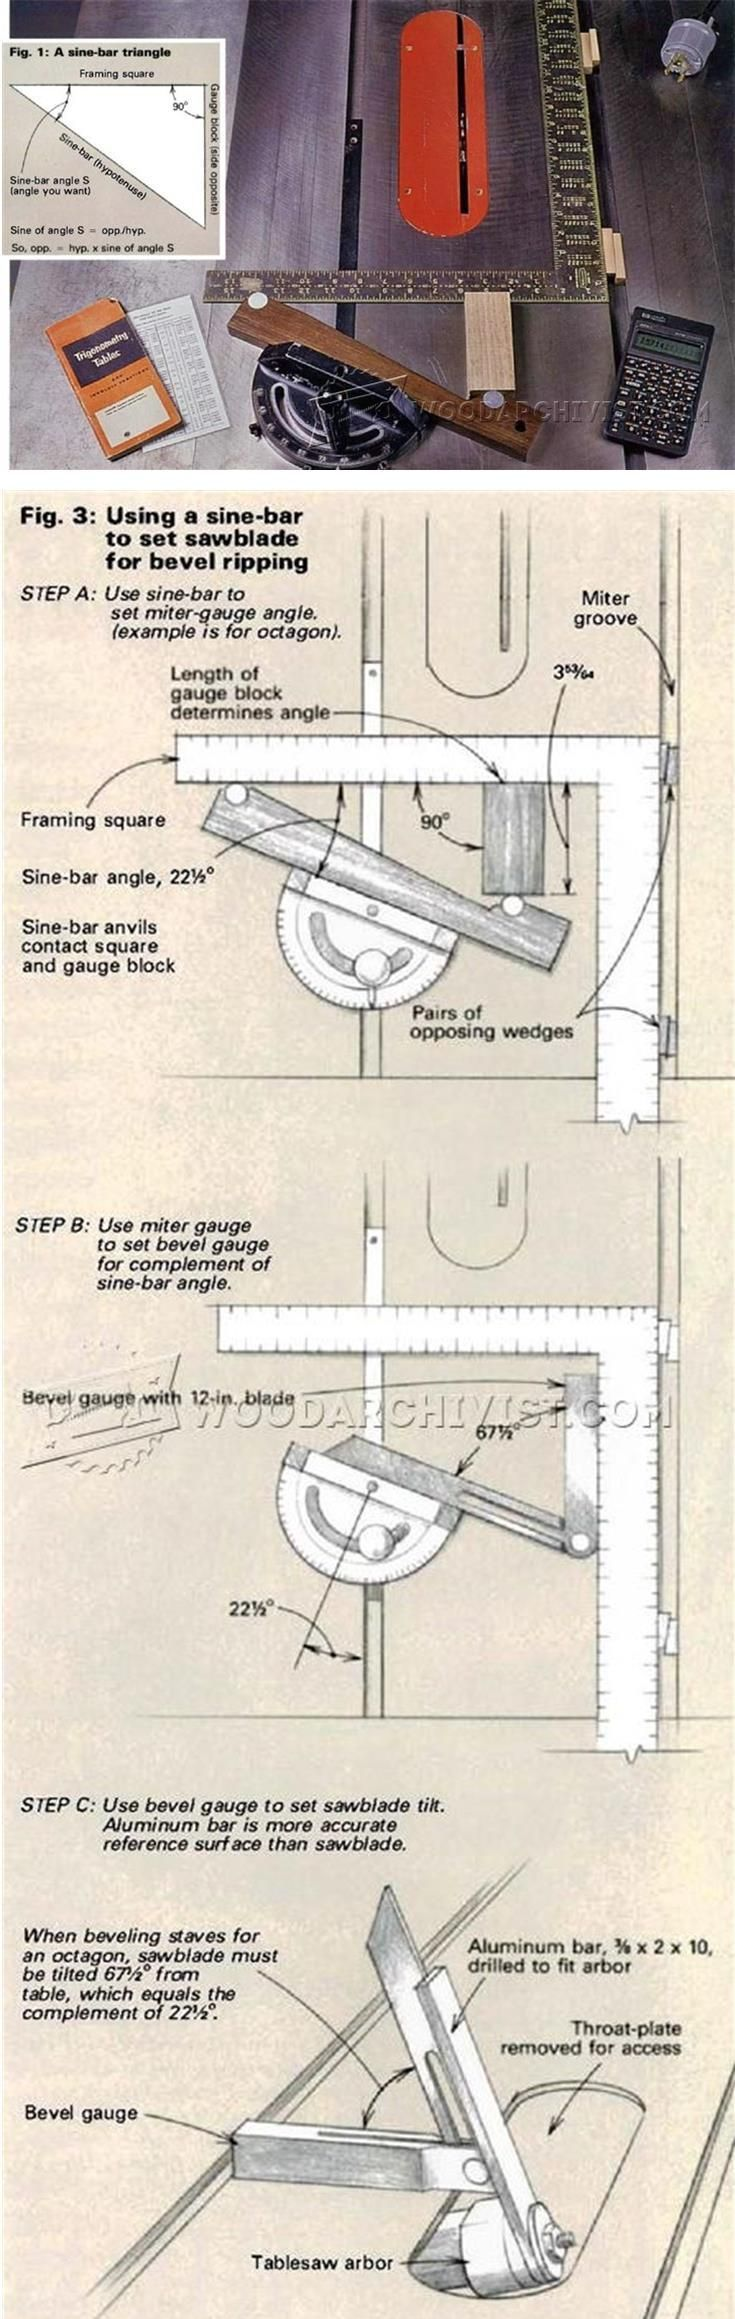 Simple Instrument Sets Precise Angles - Table Saw Tips, Jigs and Fixtures | WoodArchivist.com